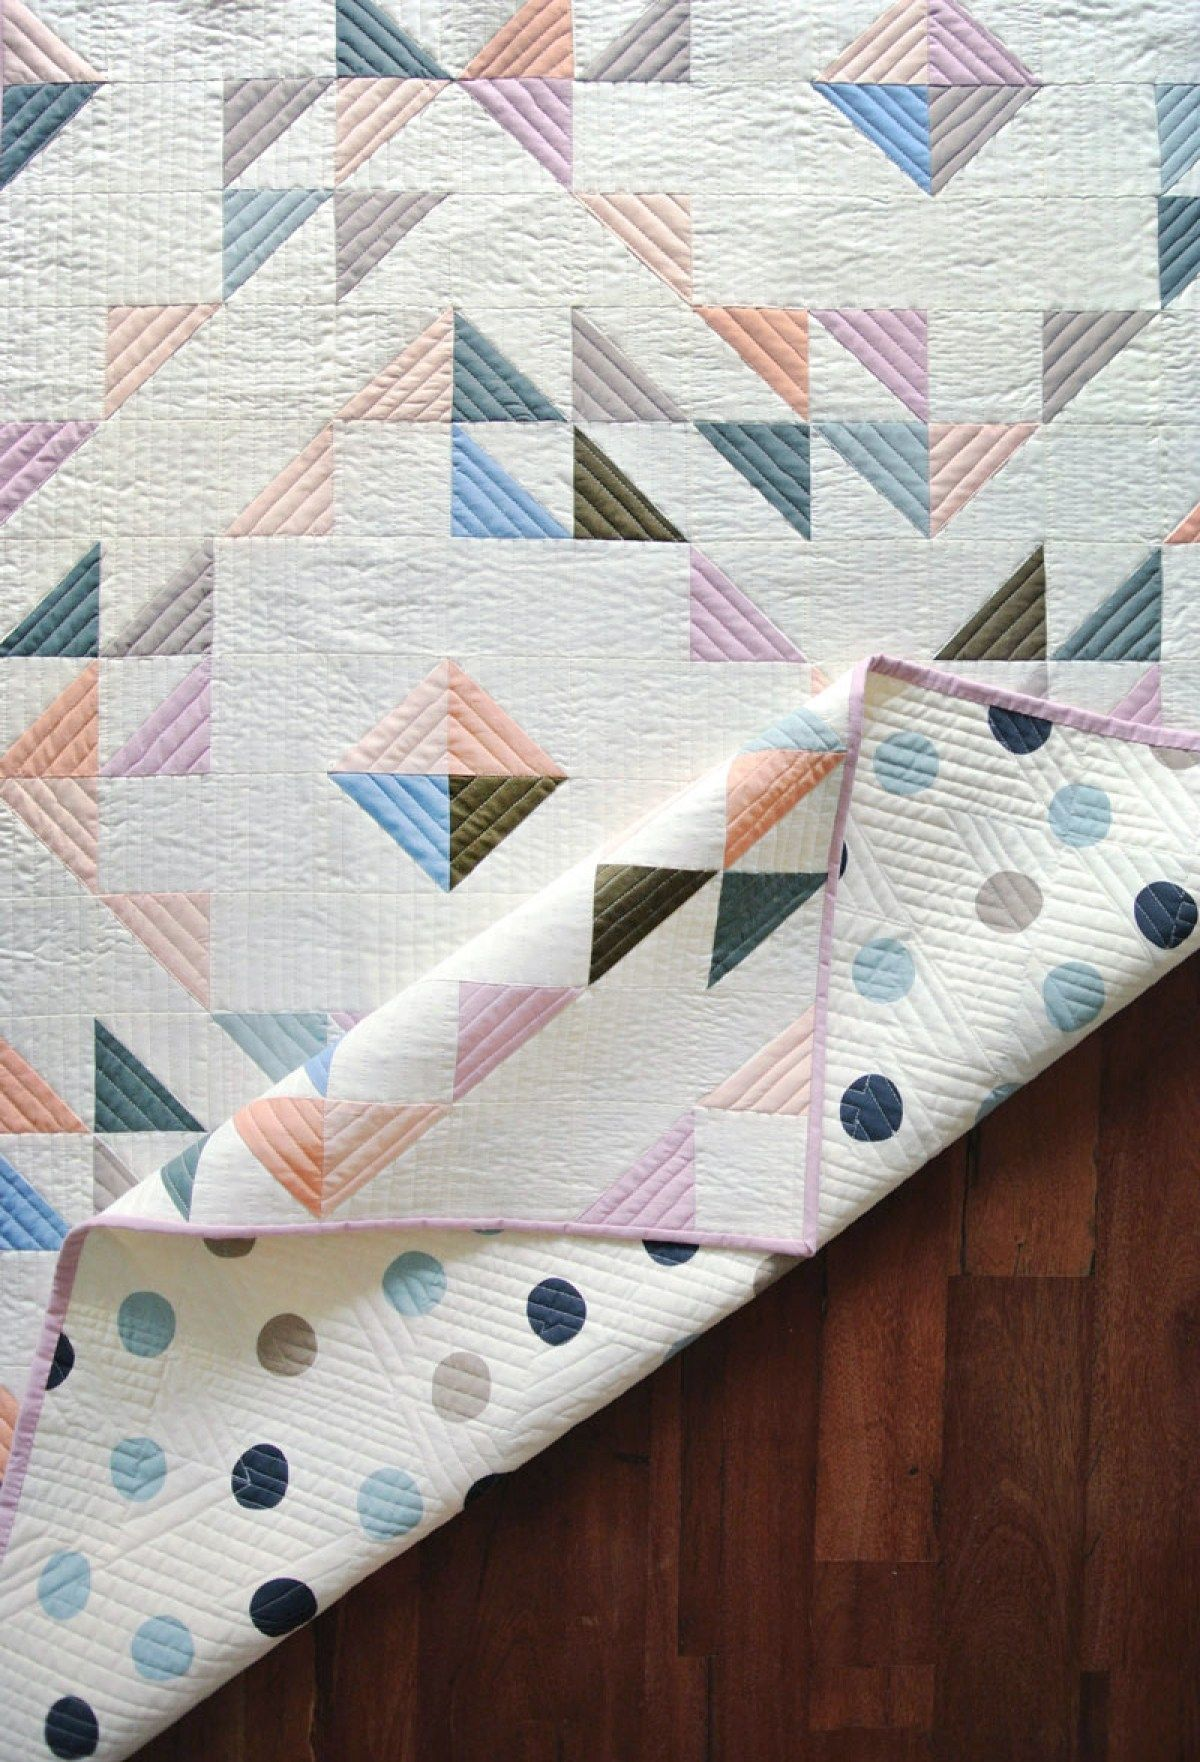 10 Free Modern Quilt Patterns For Beginners Making Things Is Awesome Free Baby Quilt Patterns Modern Quilt Patterns Beginner Quilt Patterns